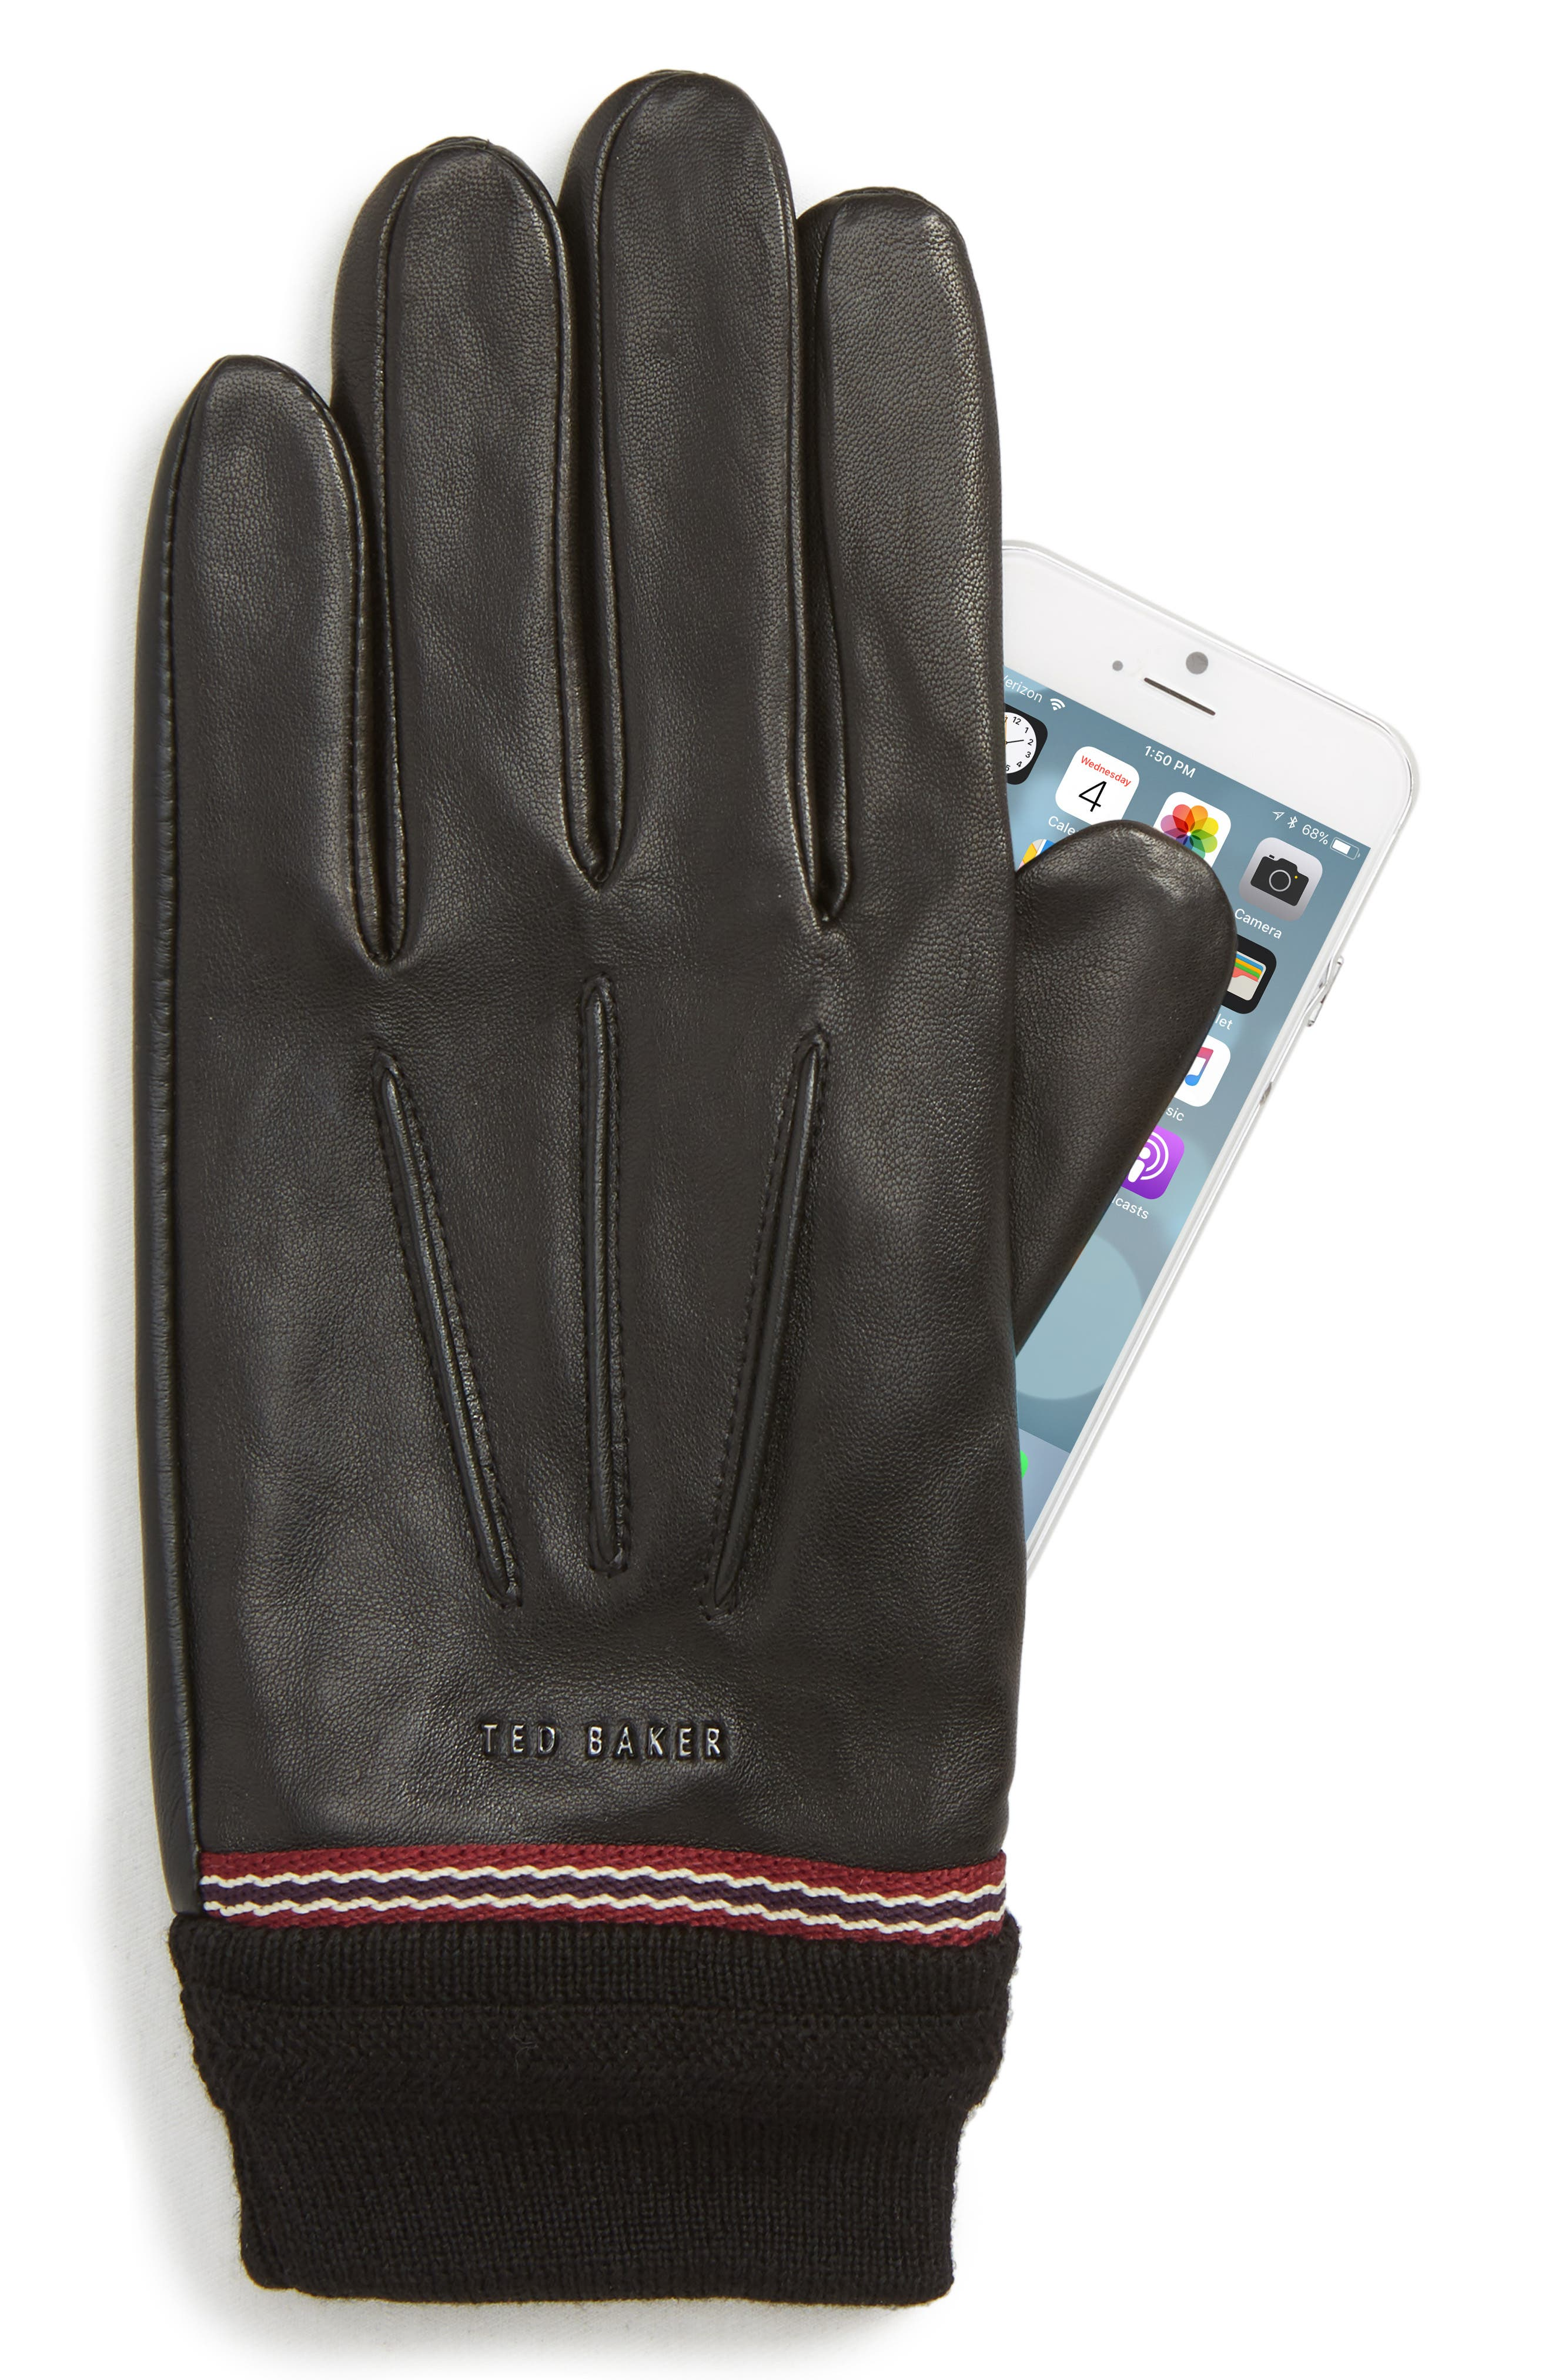 Cuffed Leather Touchscreen Gloves,                             Alternate thumbnail 2, color,                             001